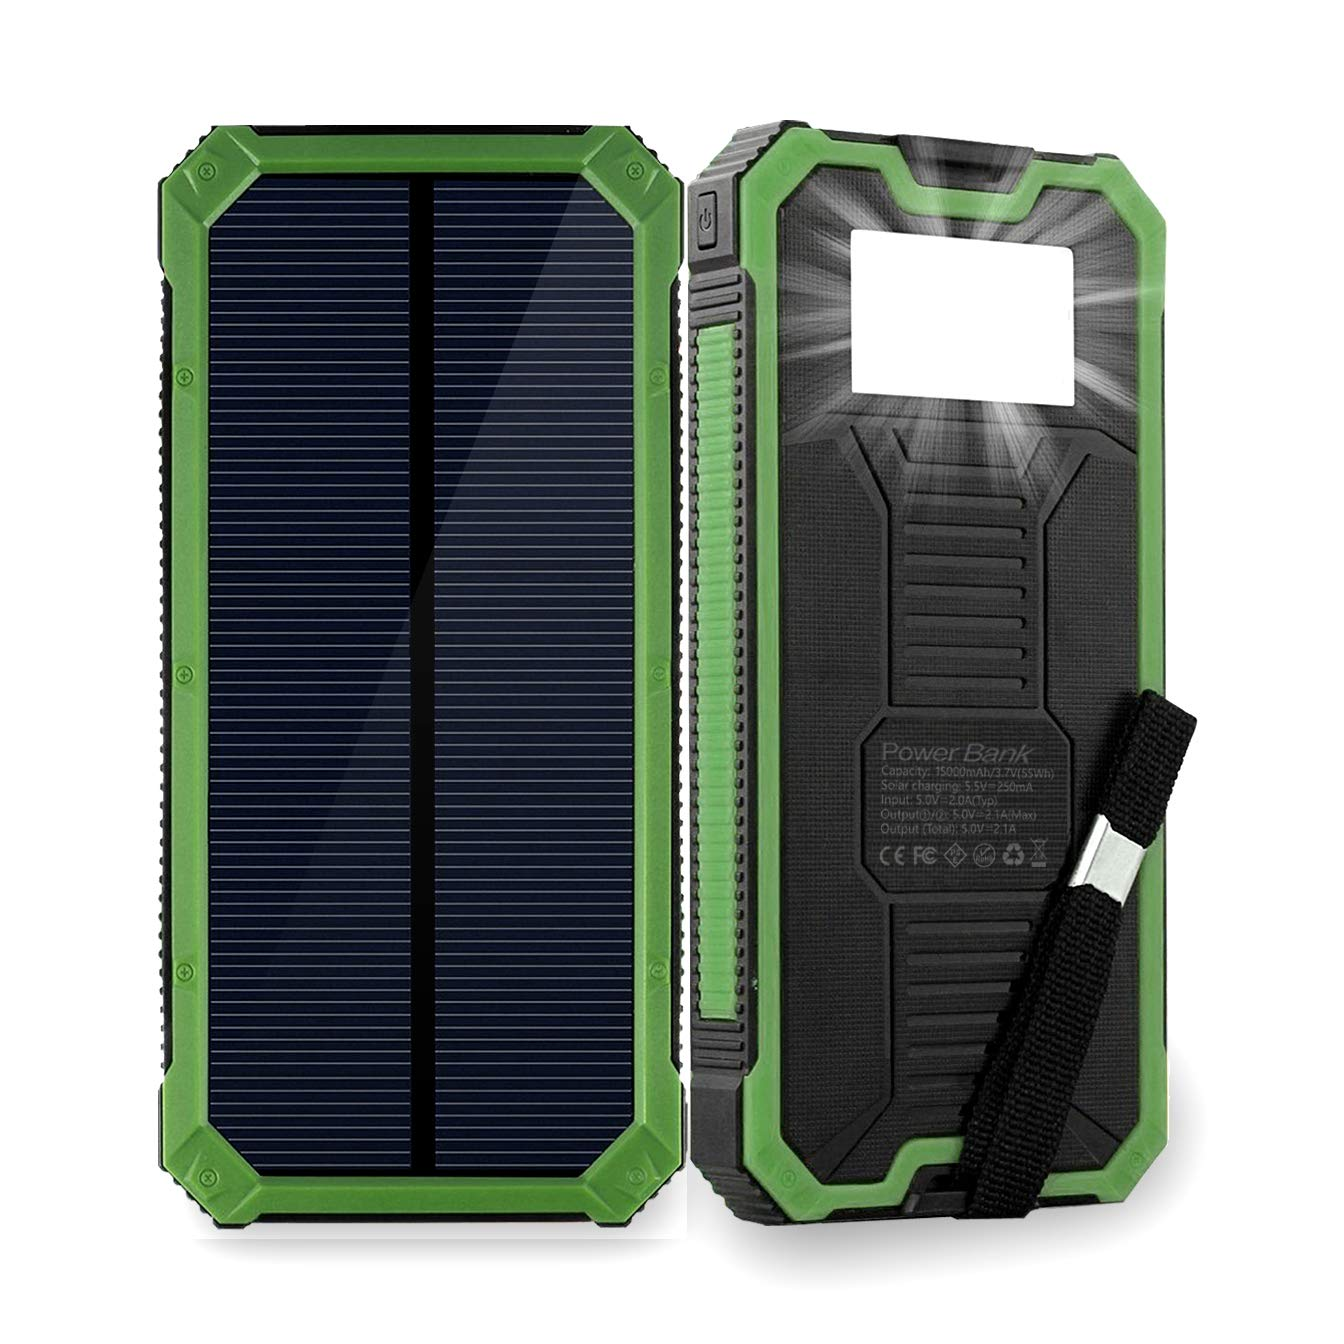 best service 6a6e0 e2dda Solar Phone Charger Friengood 15000mAh Portable Solar Power Bank with Dual  USB Ports, Waterproof Solar Battery Charger with 6 LED Flashlight Light for  ...